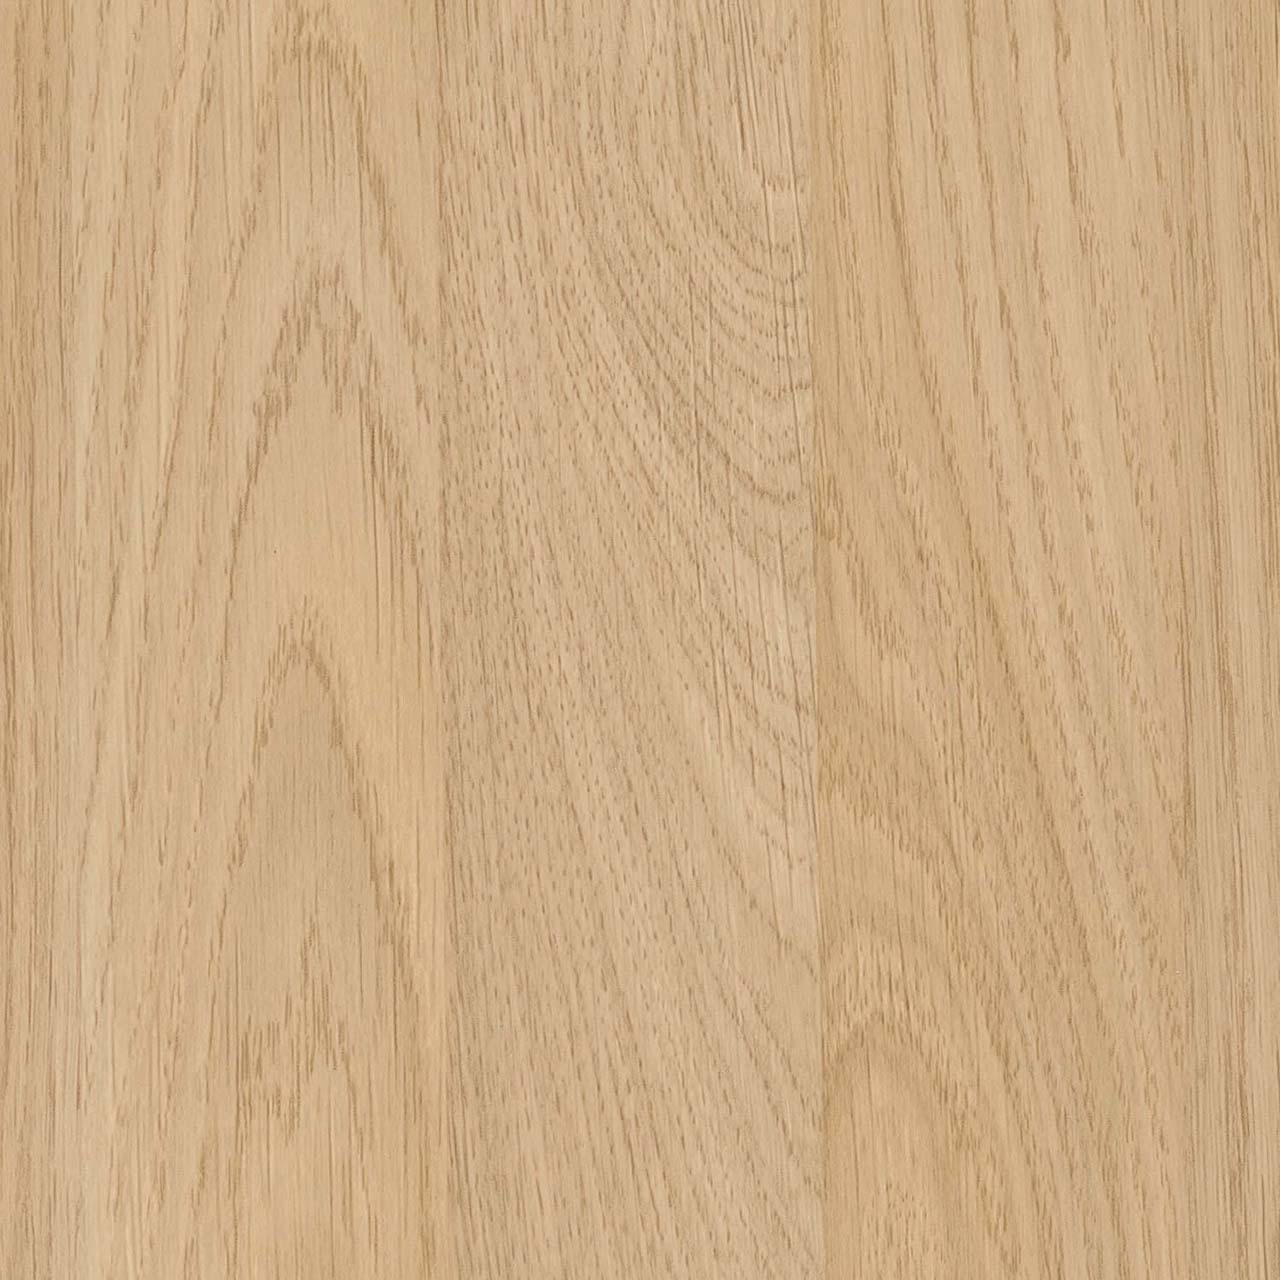 Montana Oak effect laminate panel